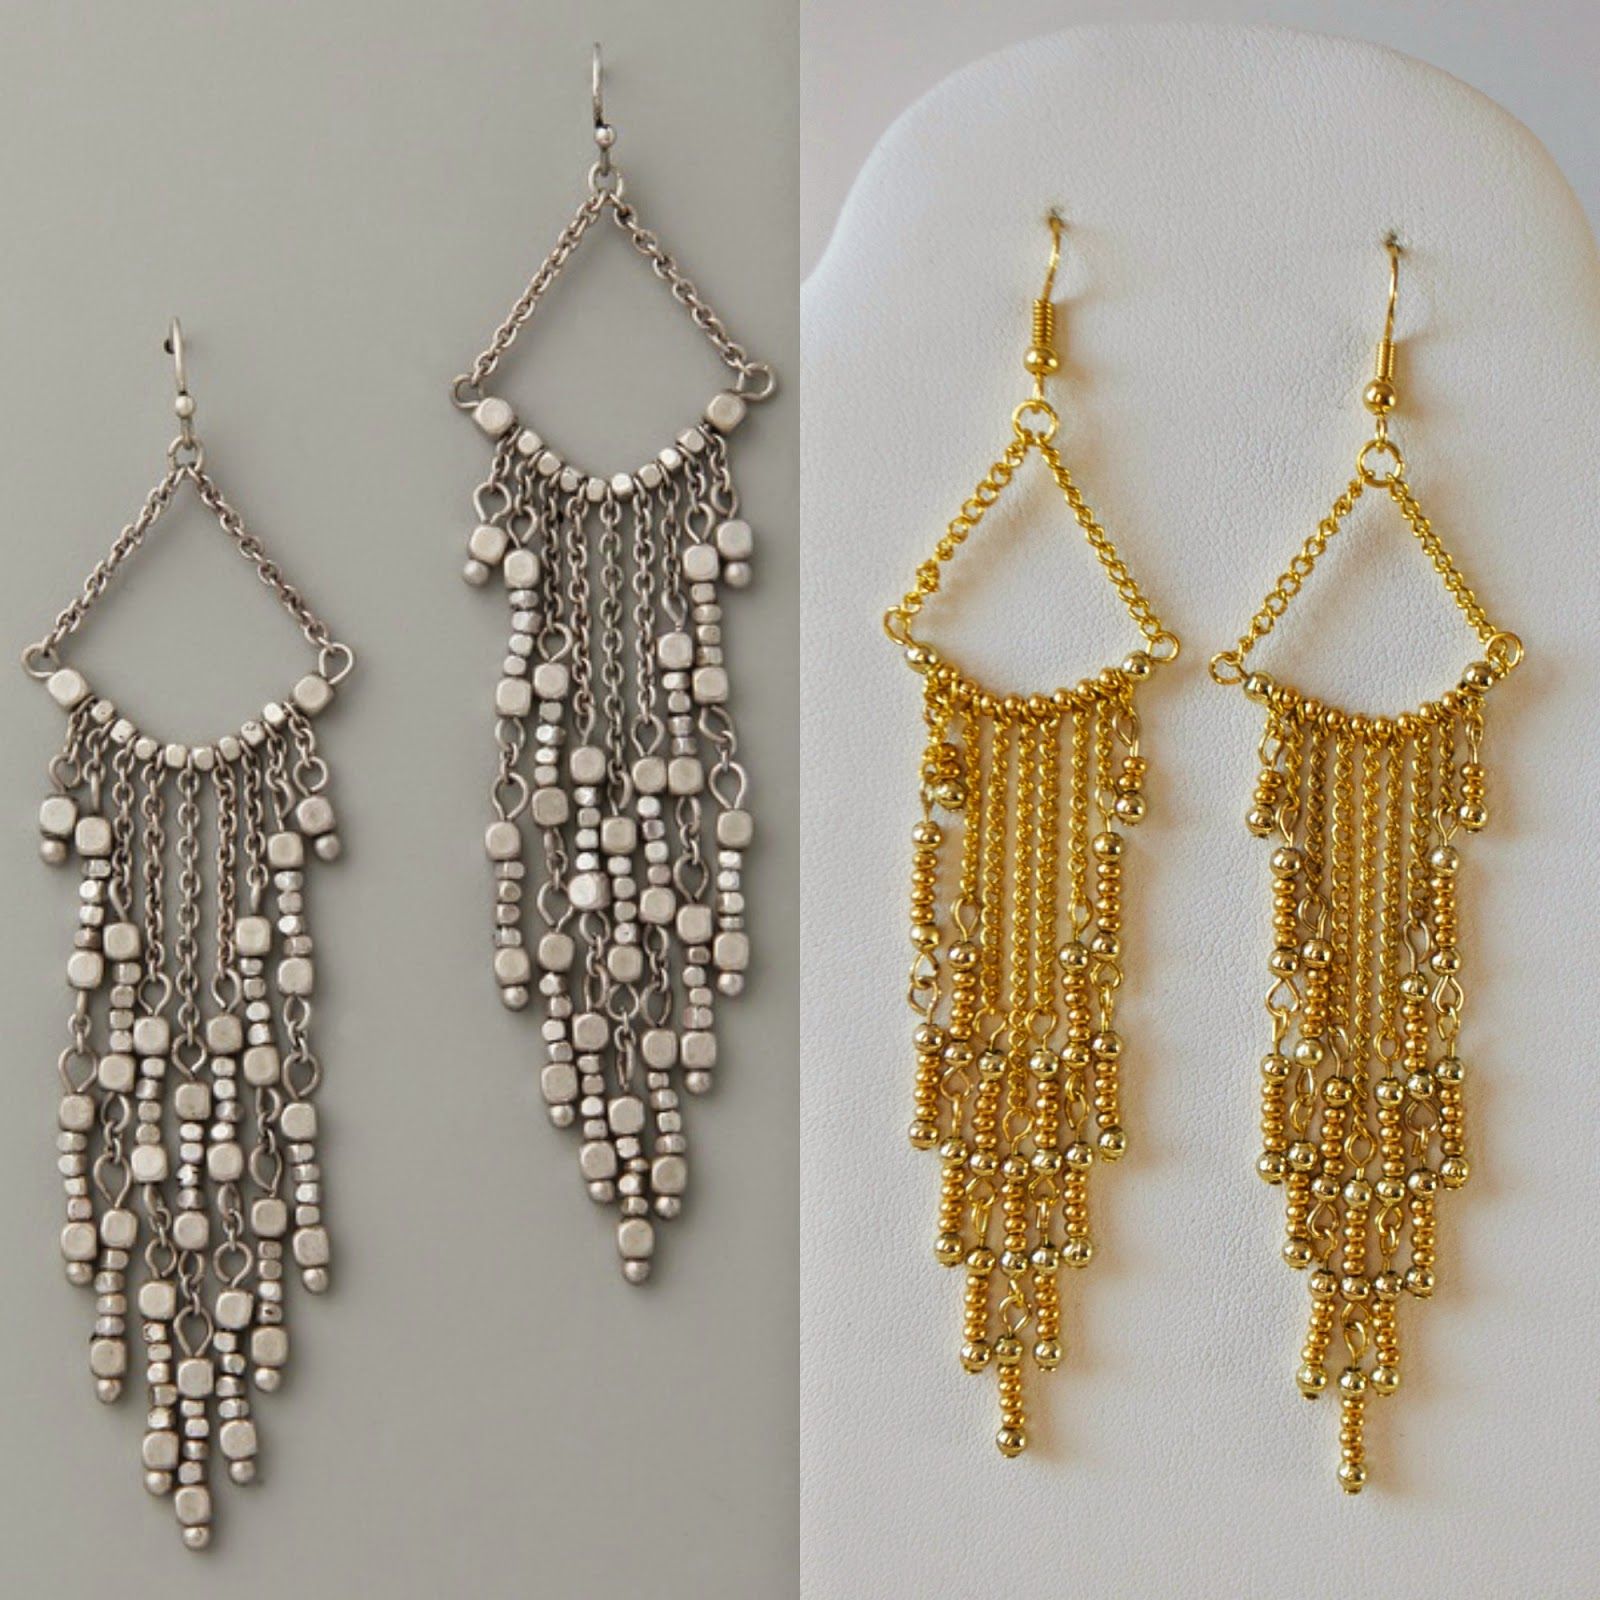 Diy gold chandelier earrings my girlish whims thats what i thought when i saw these earrings from shopbop i made my own version mozeypictures Choice Image